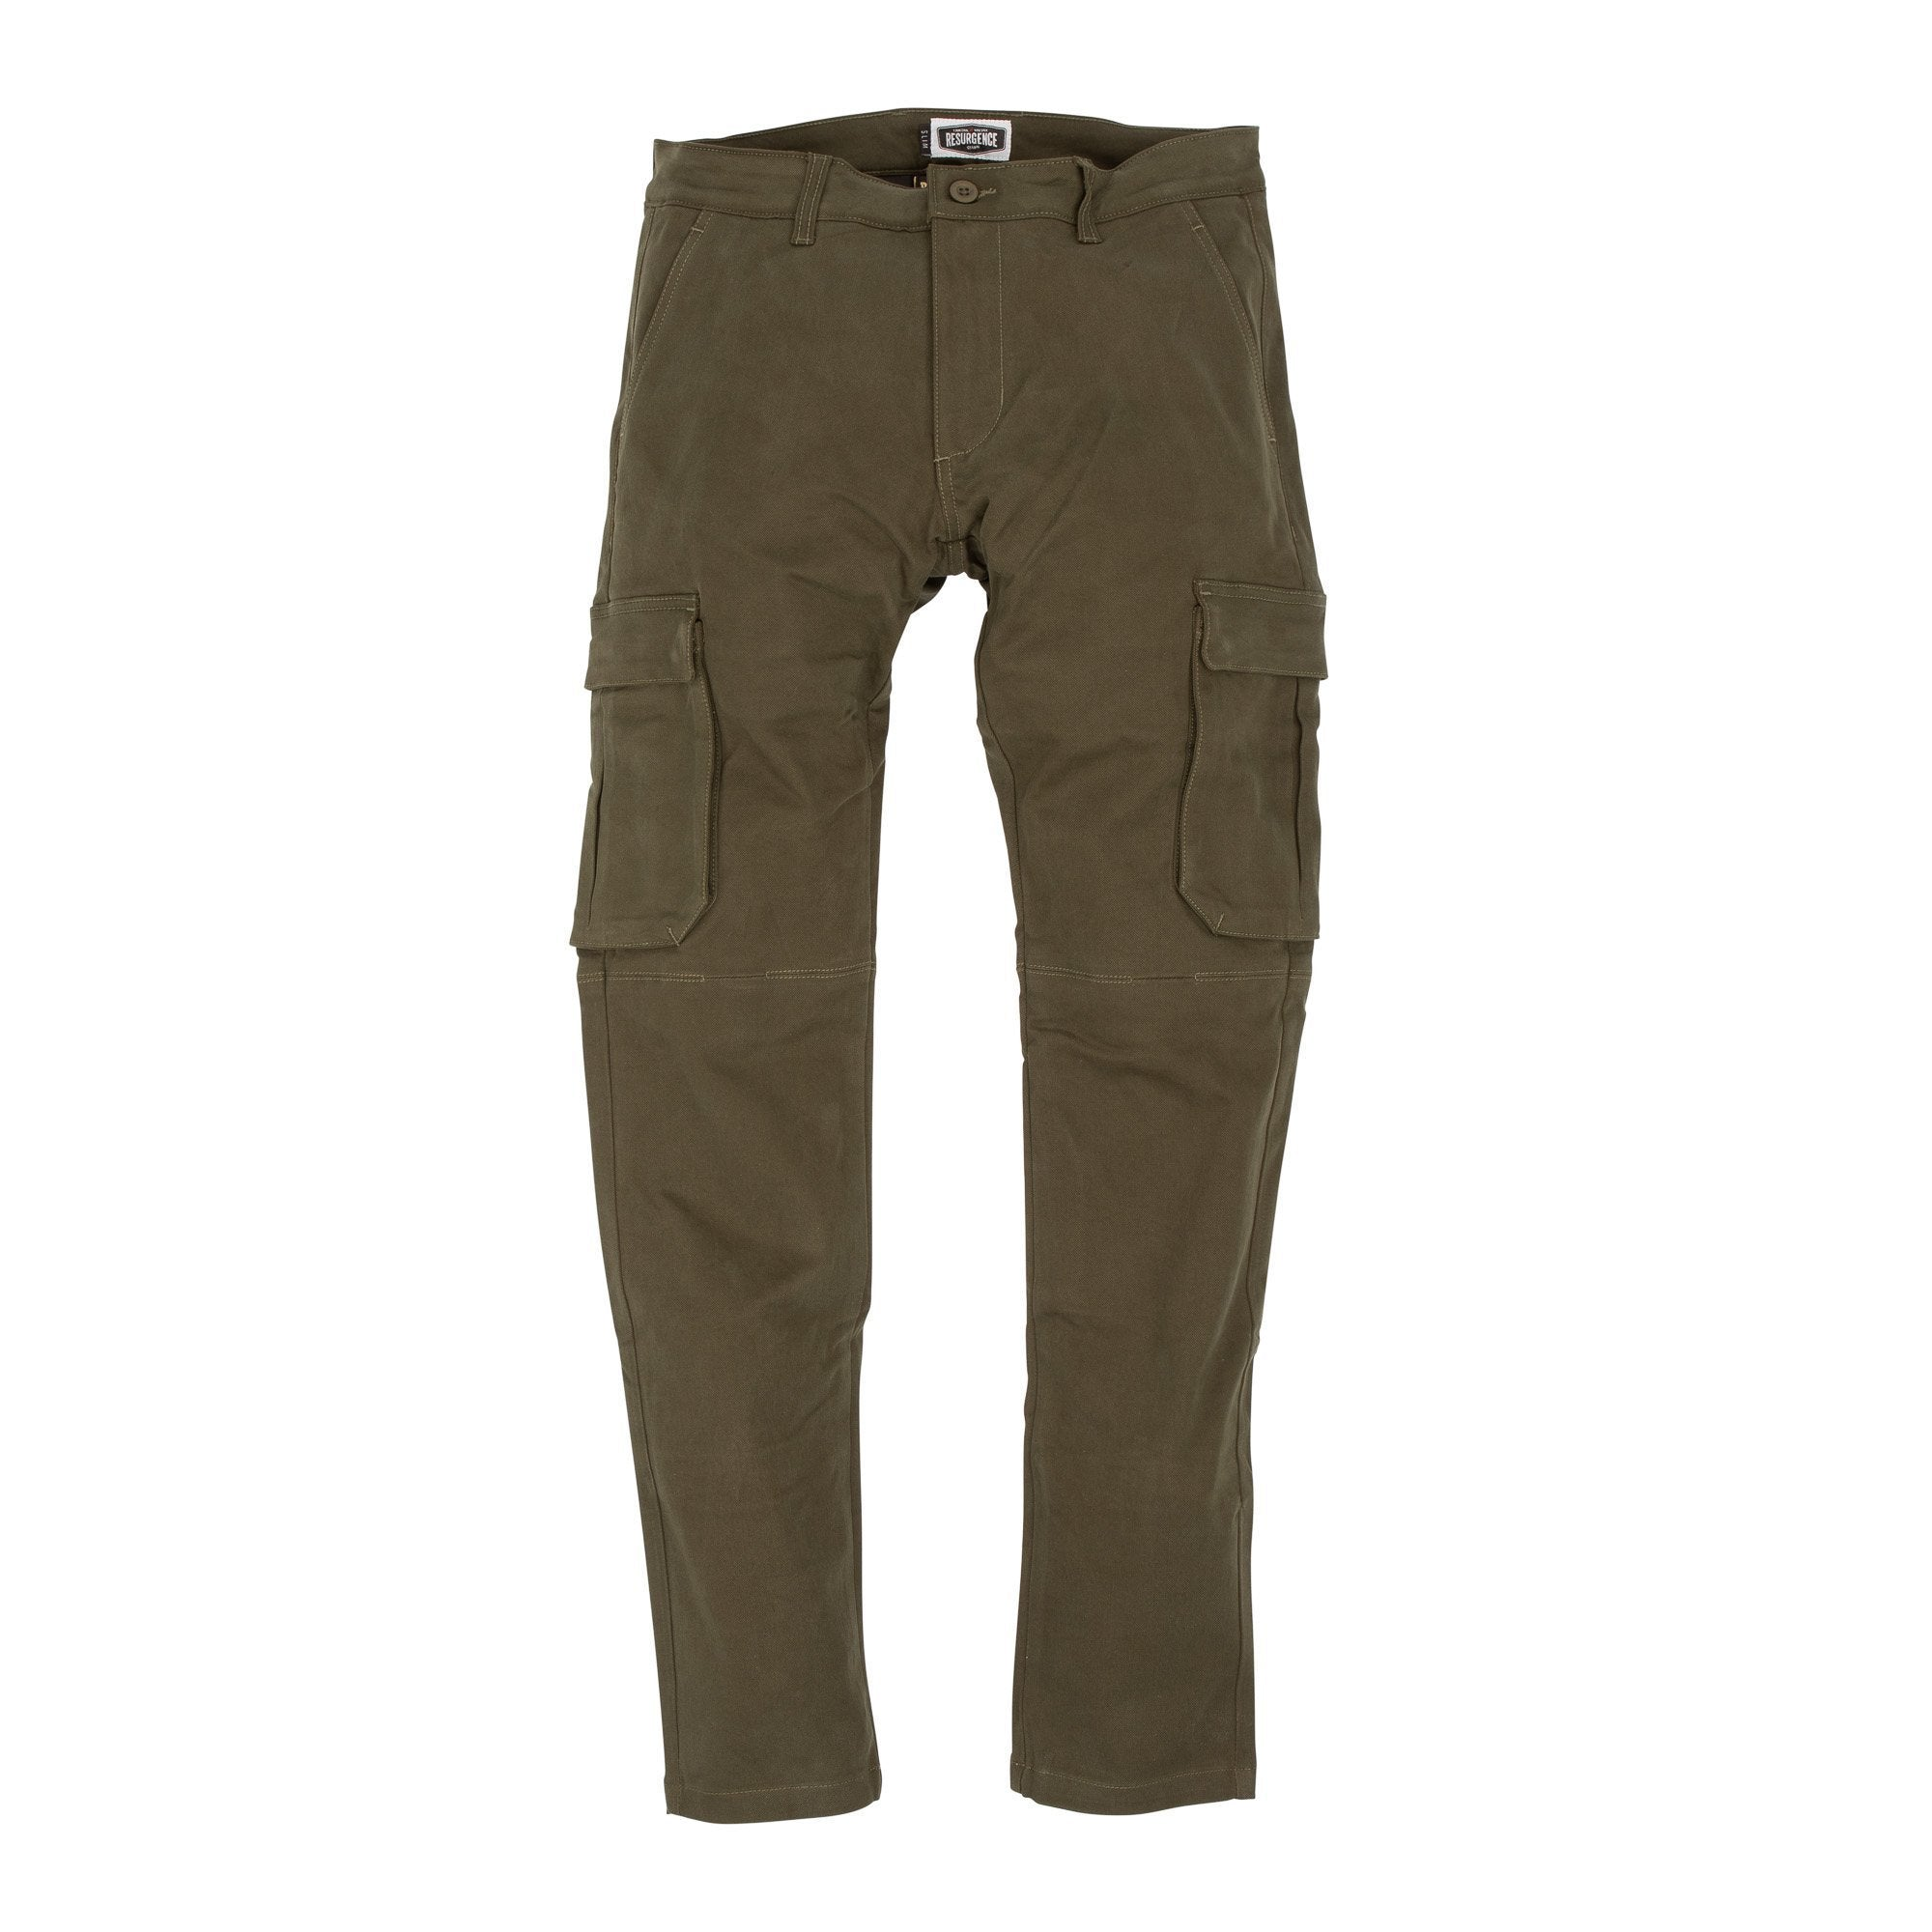 Resurgence Gear Inc. - Resurgence Gear® 2020 Cargo PEKEV Motorradhose - Military Green - Herrenhose - Salt Flats Clothing